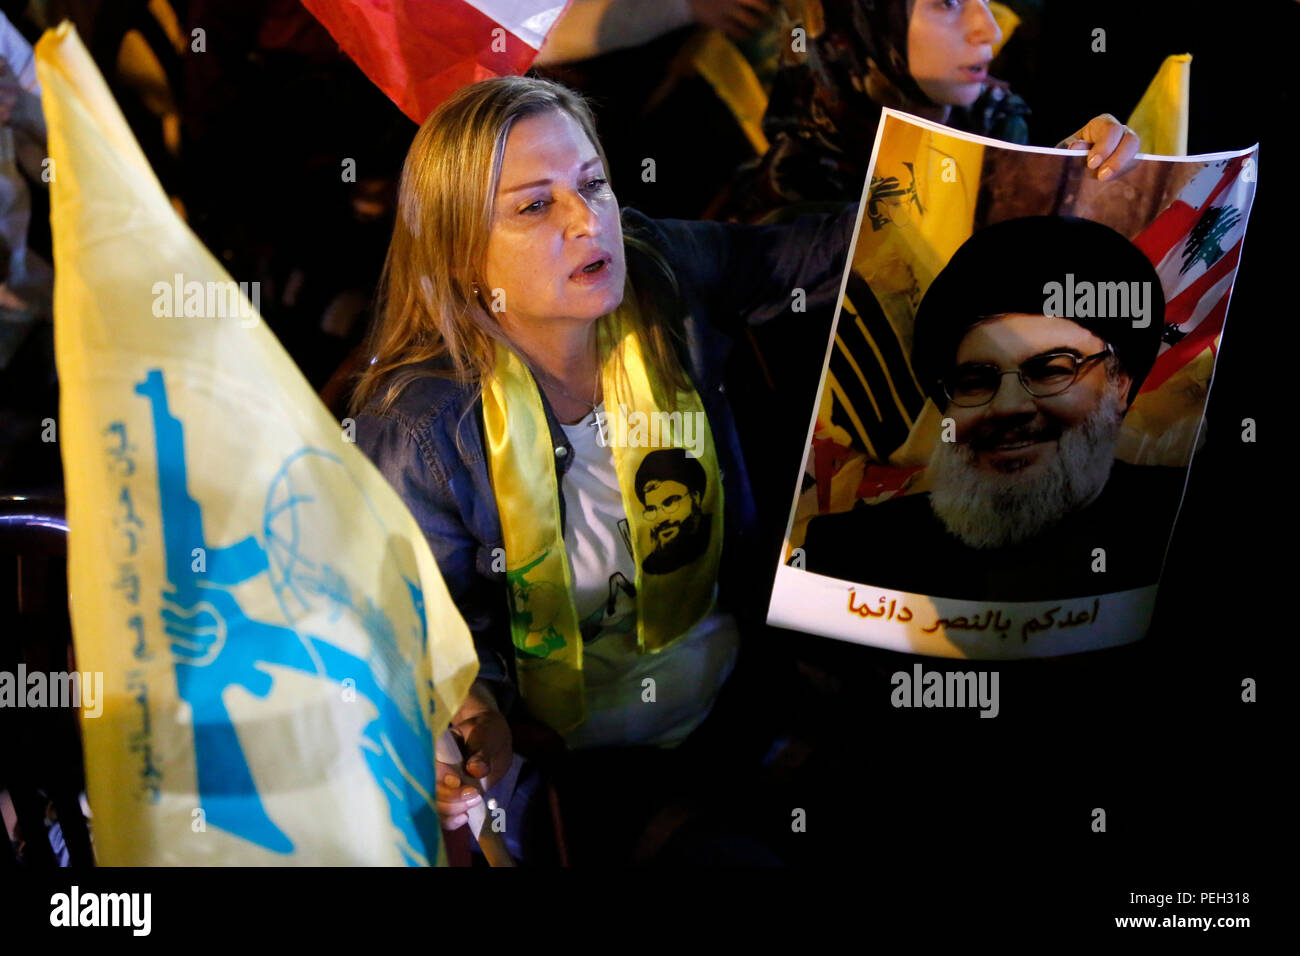 Beirut, Lebanon. 14th Aug, 2018. A woman holds the flag of Hezbollah and the picture of Hezbollah leader Sayyed Hassan Nasrallah during Nasrallah delivering a televised speech in Beirut, Lebanon, Aug. 14, 2018. Hezbollah's leader Sayyed Hassan Nasrallah on Tuesday called on political parties to maintain their negotiation efforts until they reach consensus on cabinet formation in Lebanon. Credit: Bilal Jawich/Xinhua/Alamy Live News - Stock Image